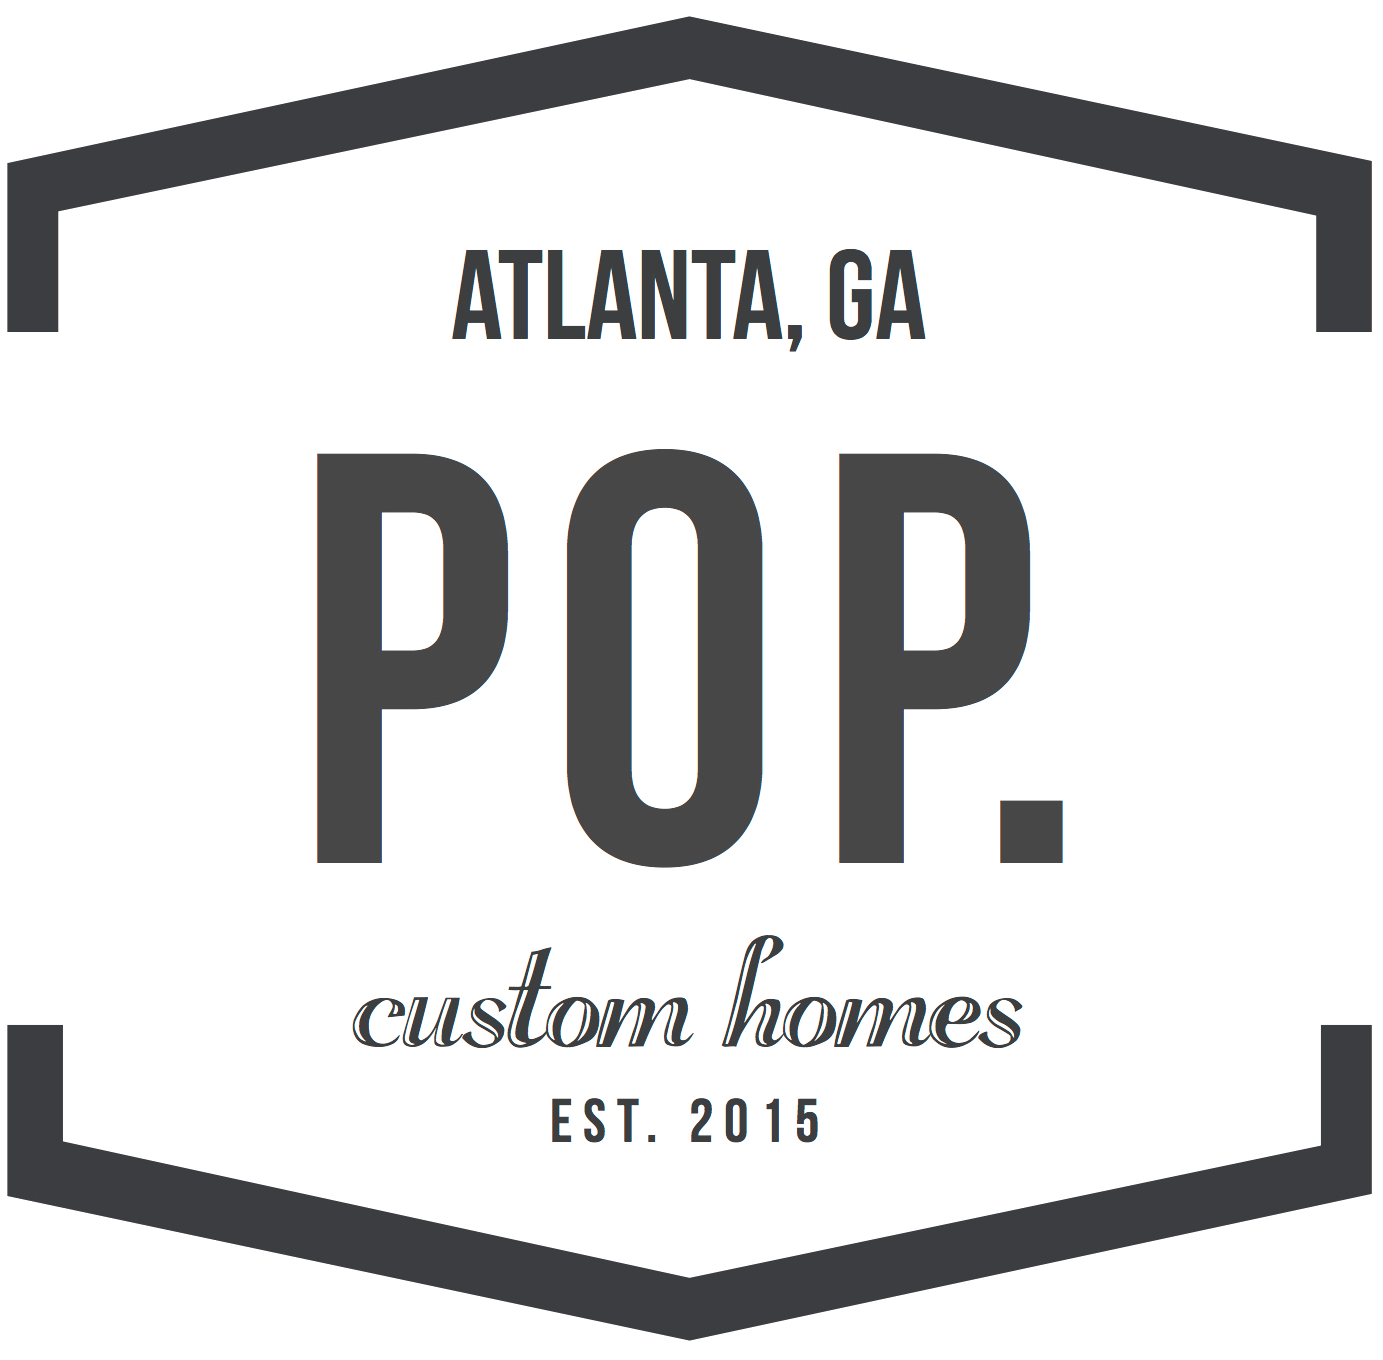 Pop Custom Homes